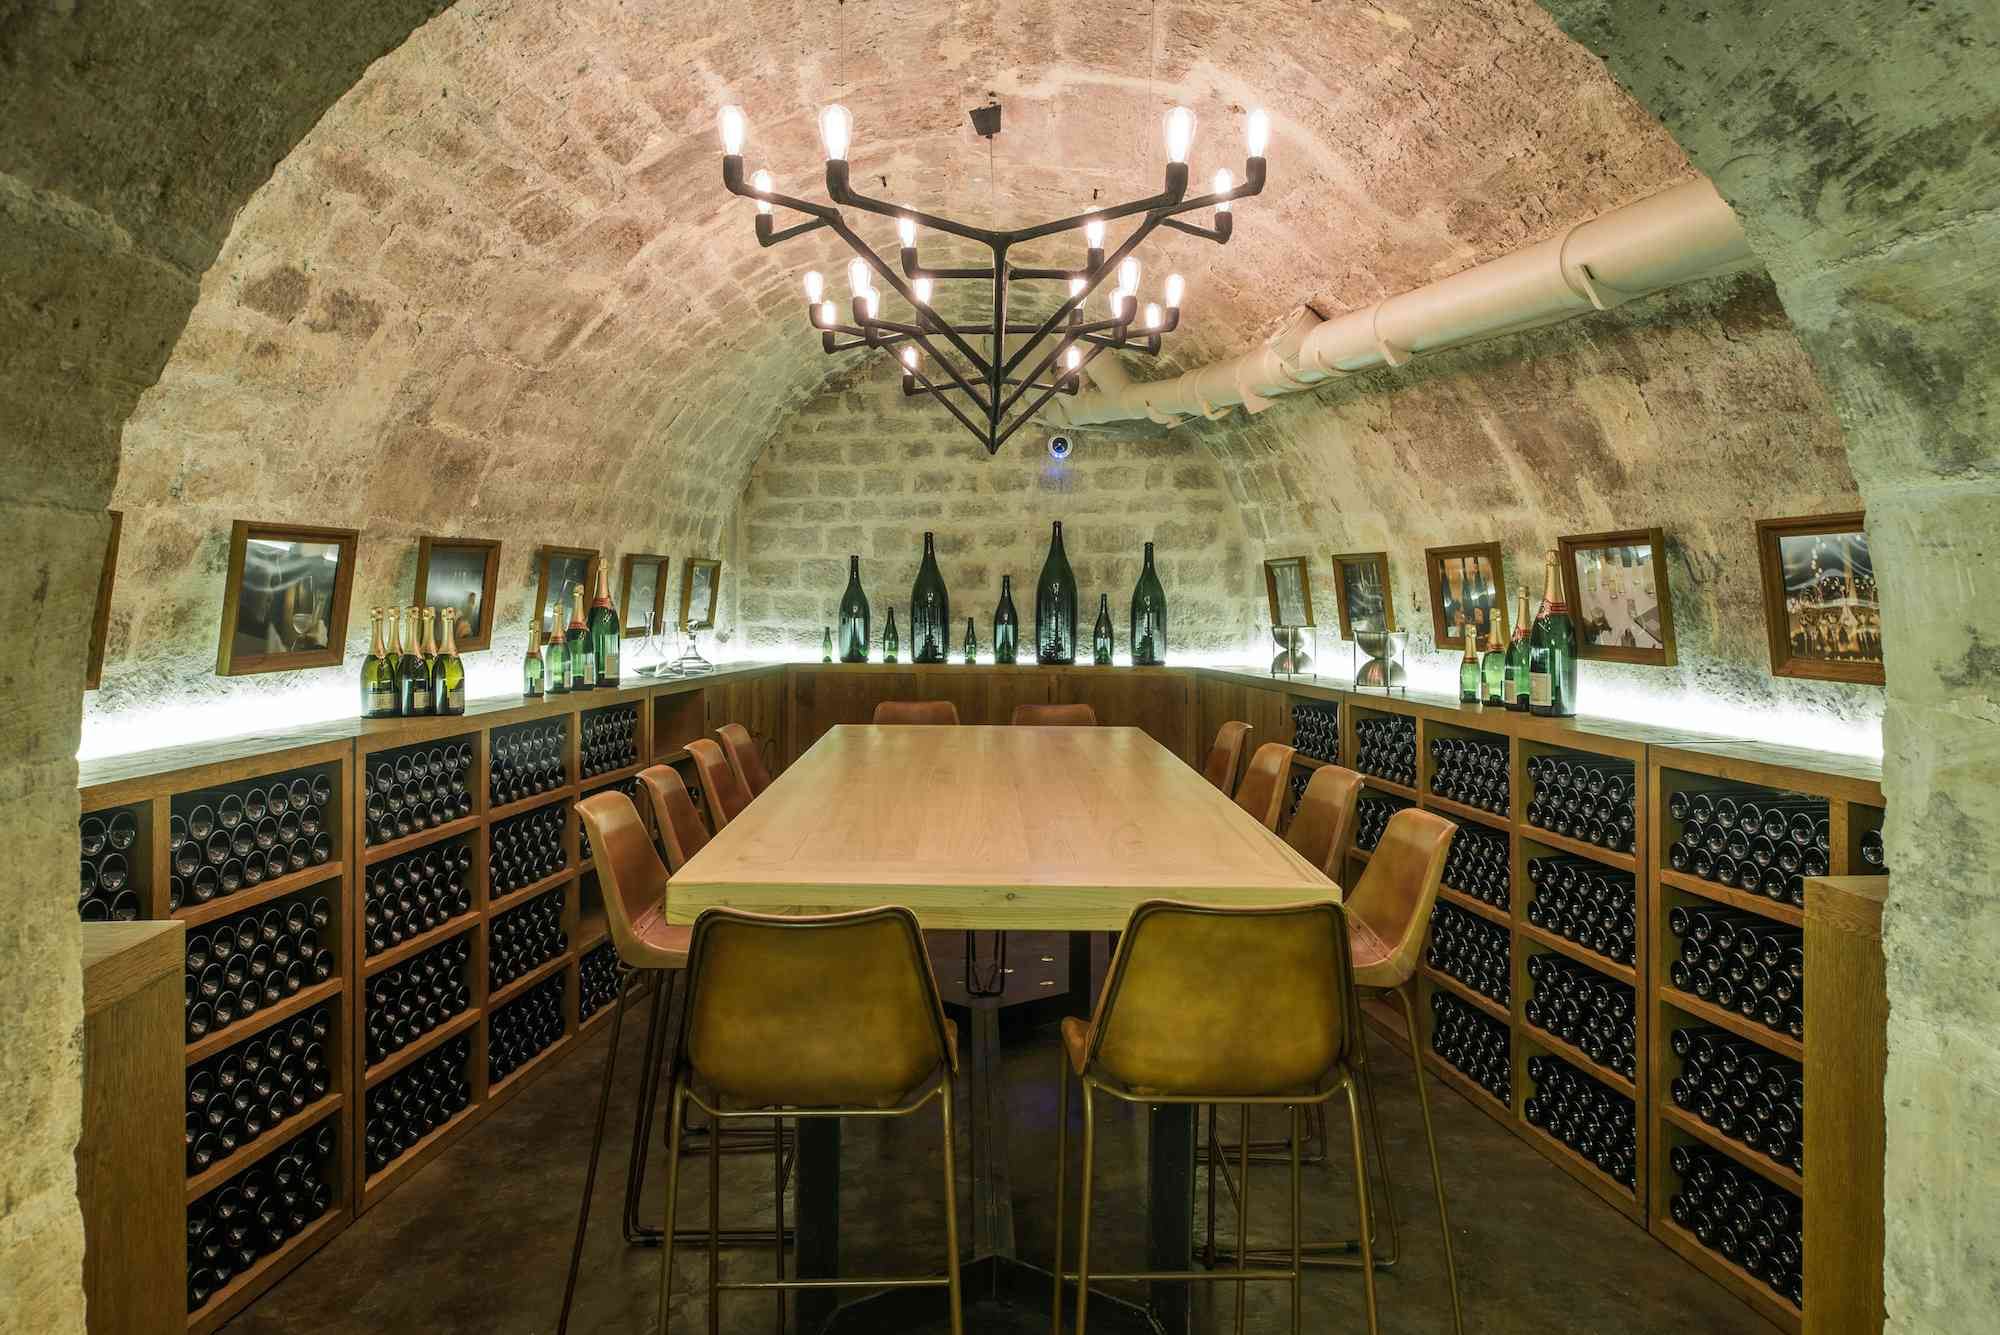 Underground wine tasting room with wine bottles surrounding the center table